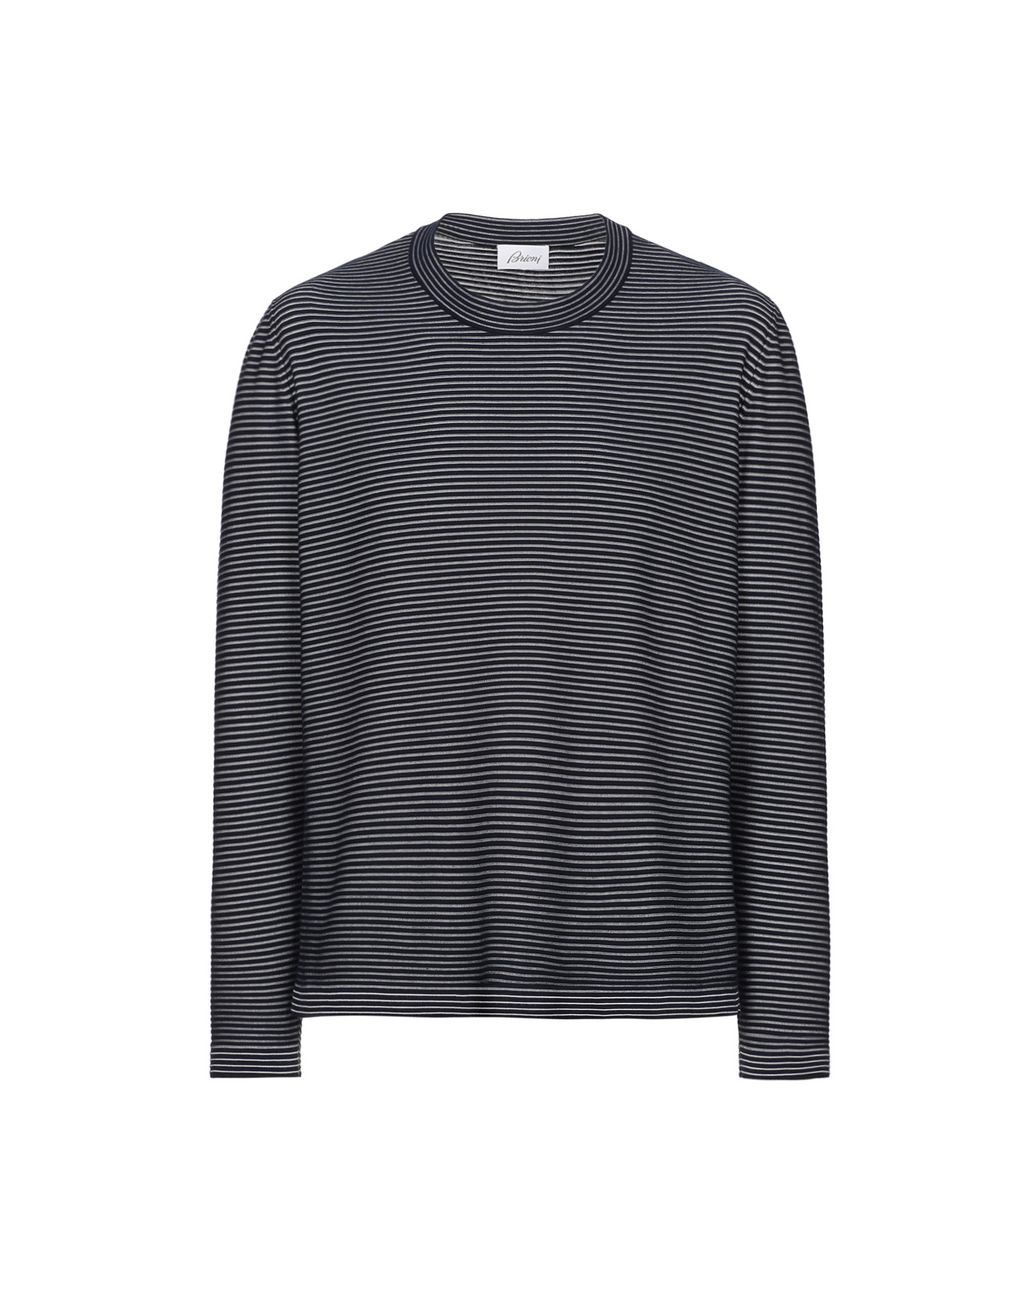 BRIONI Navy Blue and White Striped Knitwear Knitwear [*** pickupInStoreShippingNotGuaranteed_info ***] f